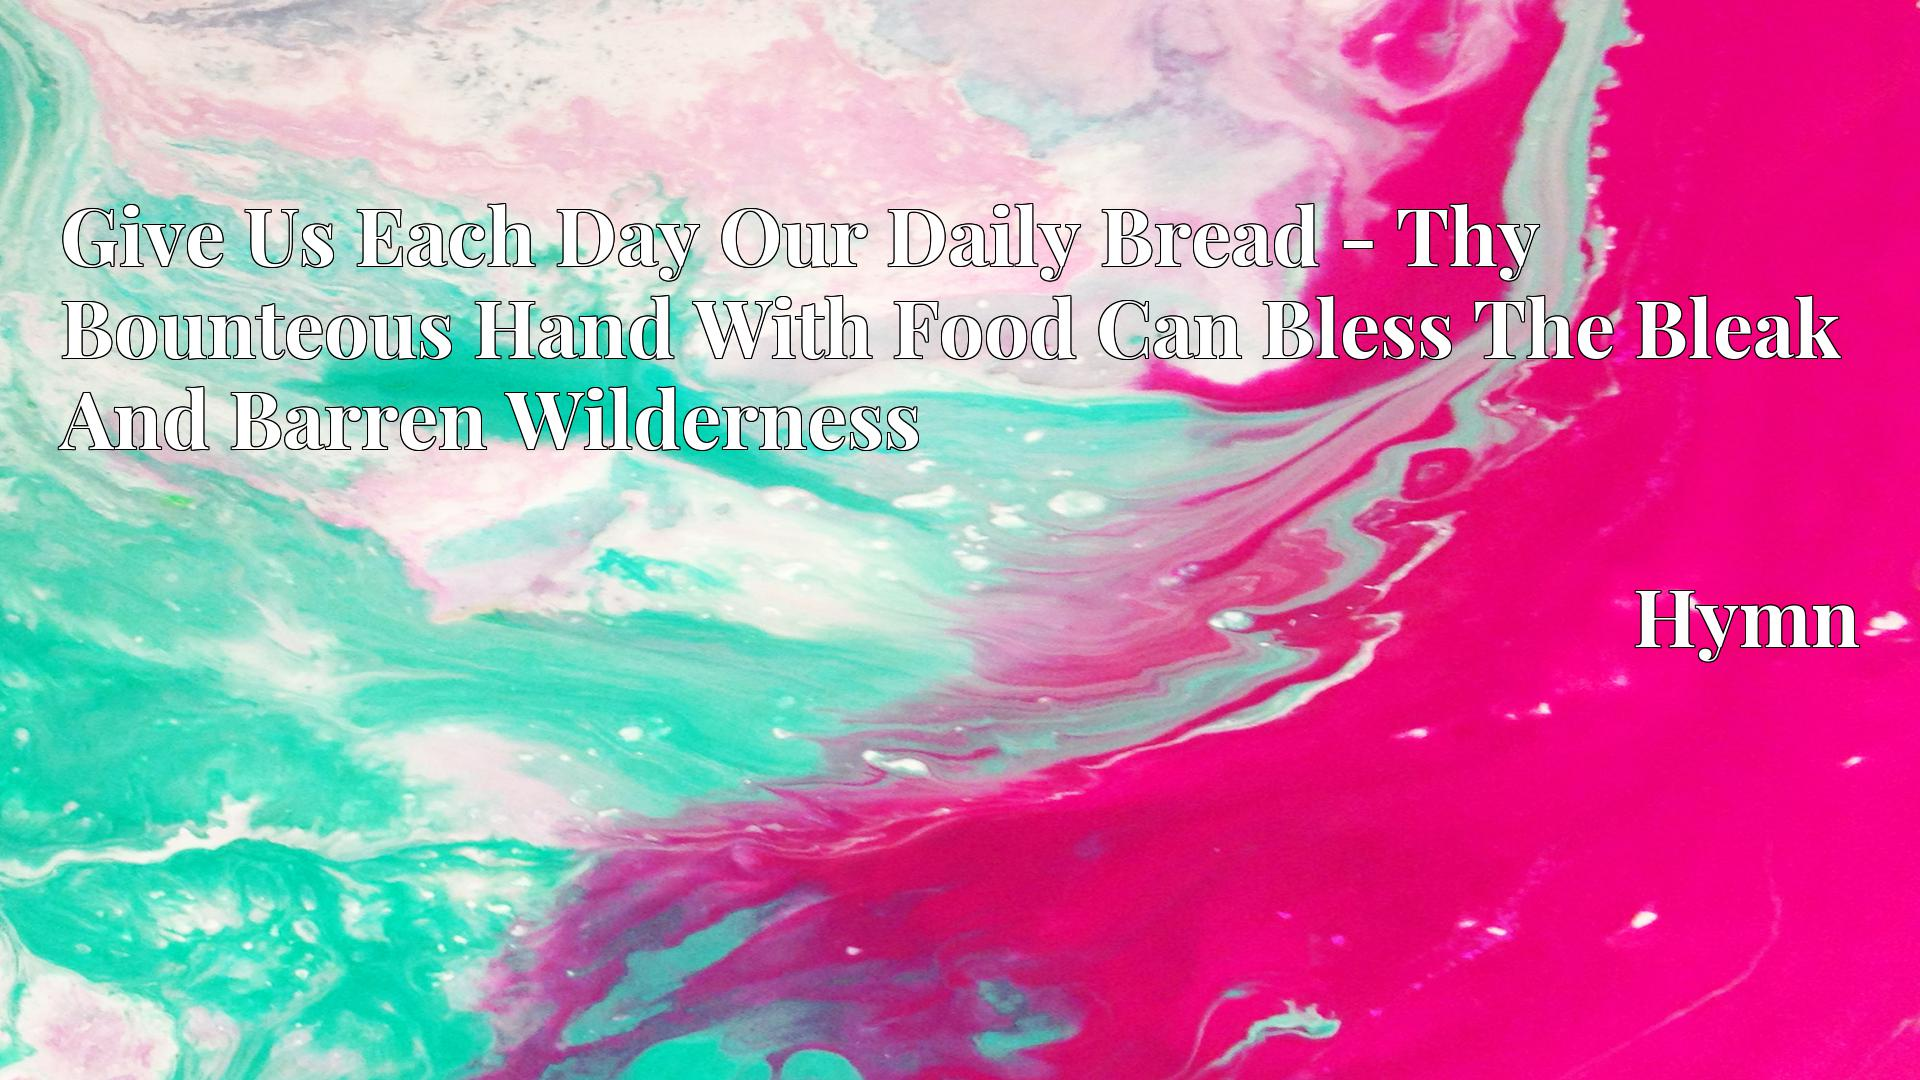 Give Us Each Day Our Daily Bread - Thy Bounteous Hand With Food Can Bless The Bleak And Barren Wilderness - Hymn